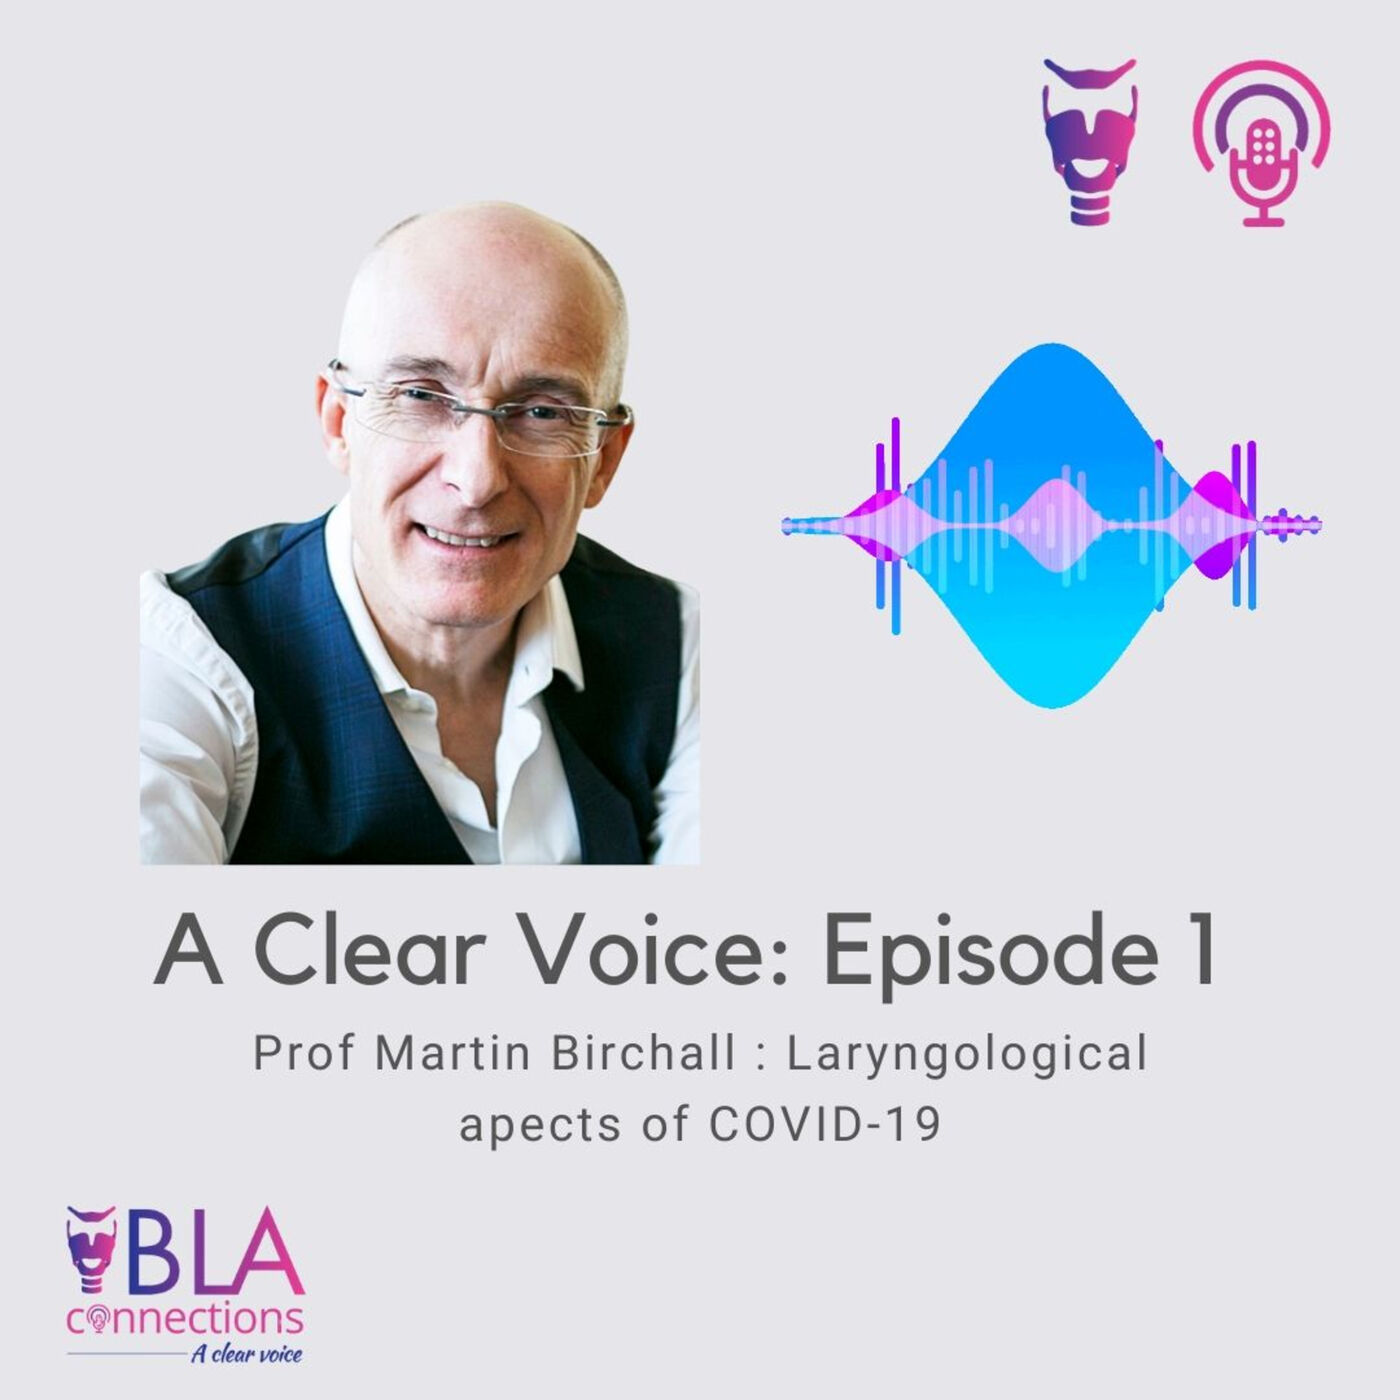 S1 Ep 1: Prof Martin Birchall on laryngological aspects of COVID-19